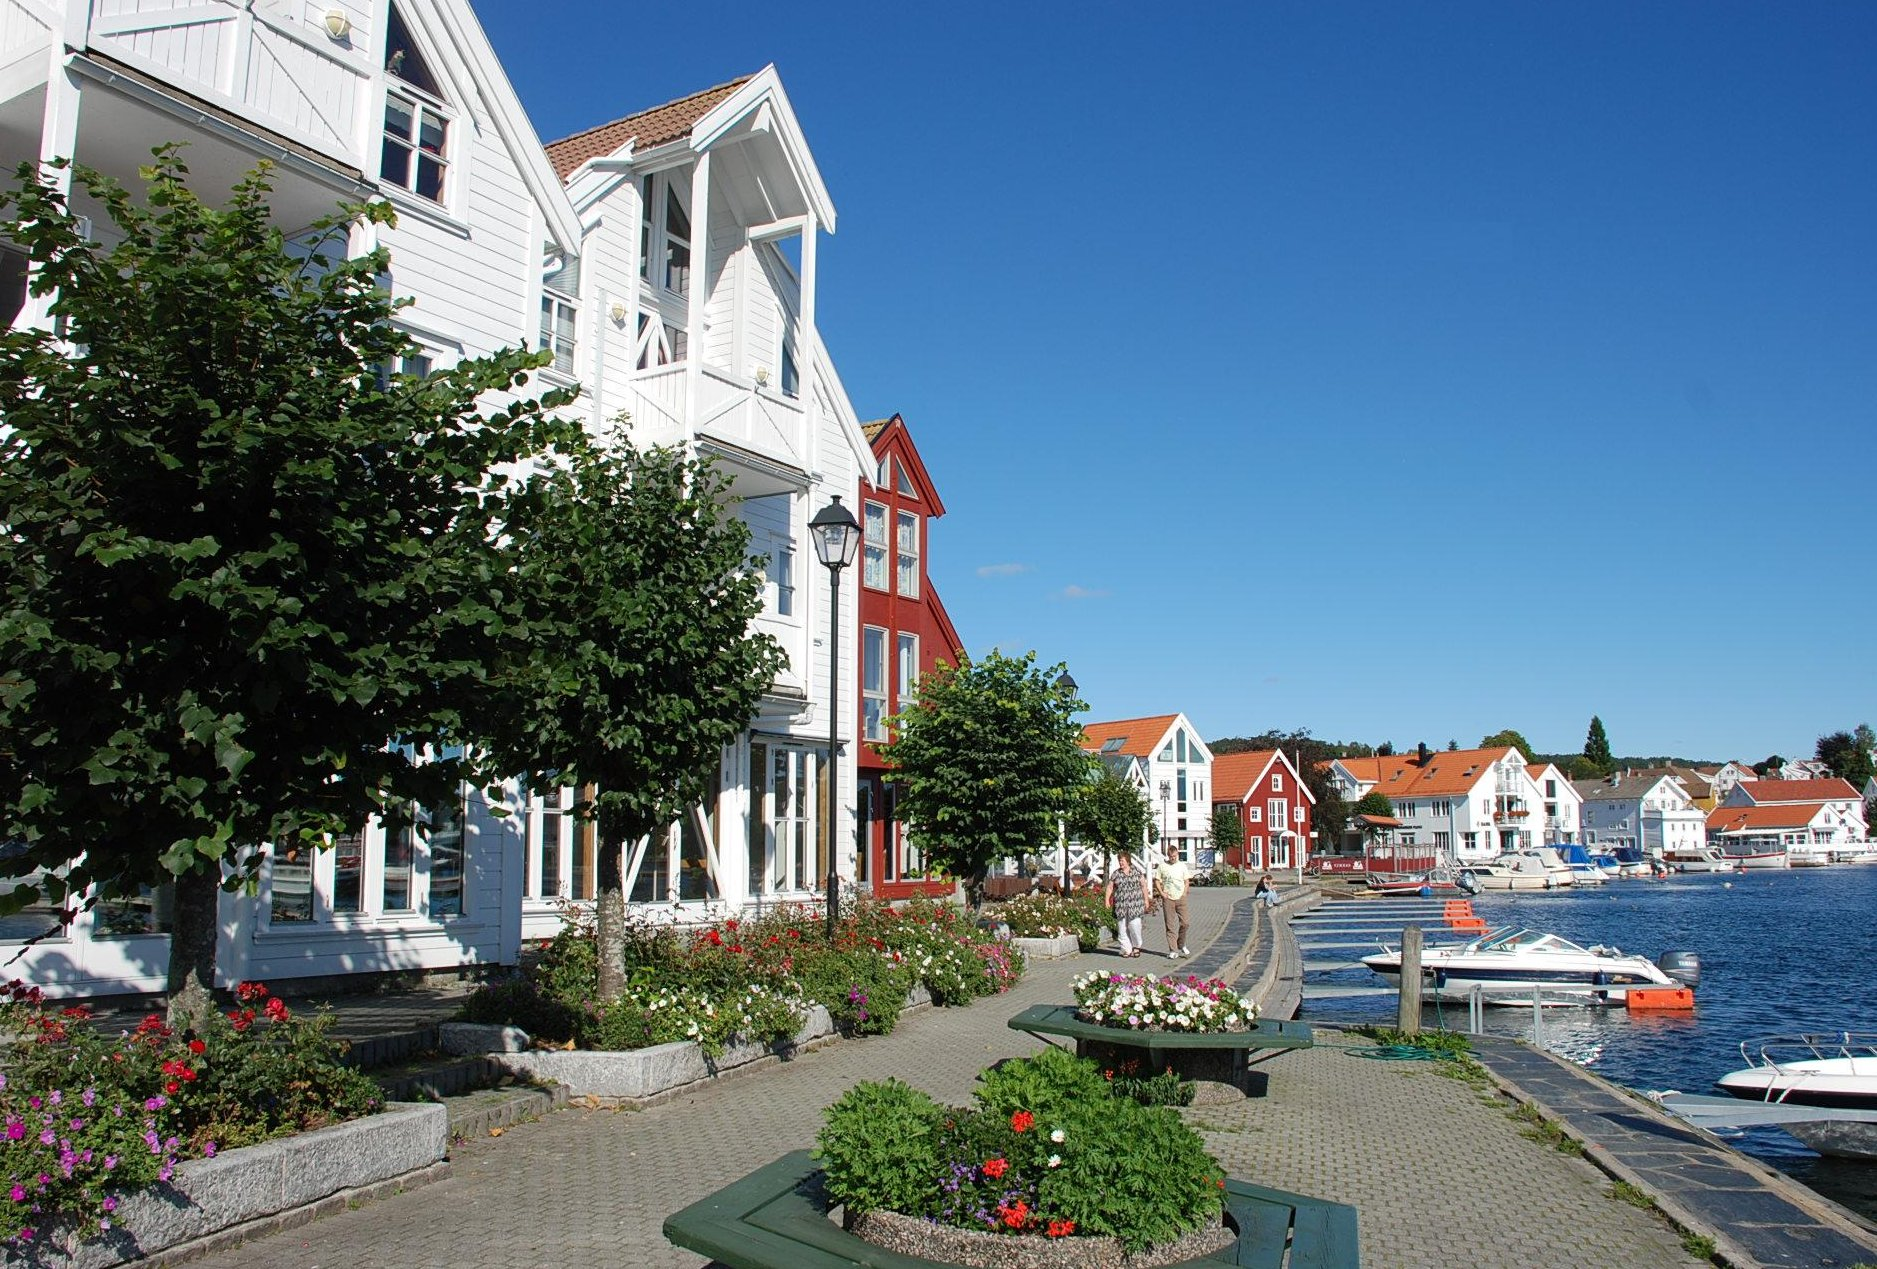 Lillesand waterfront | A Traveler's Photo Journal